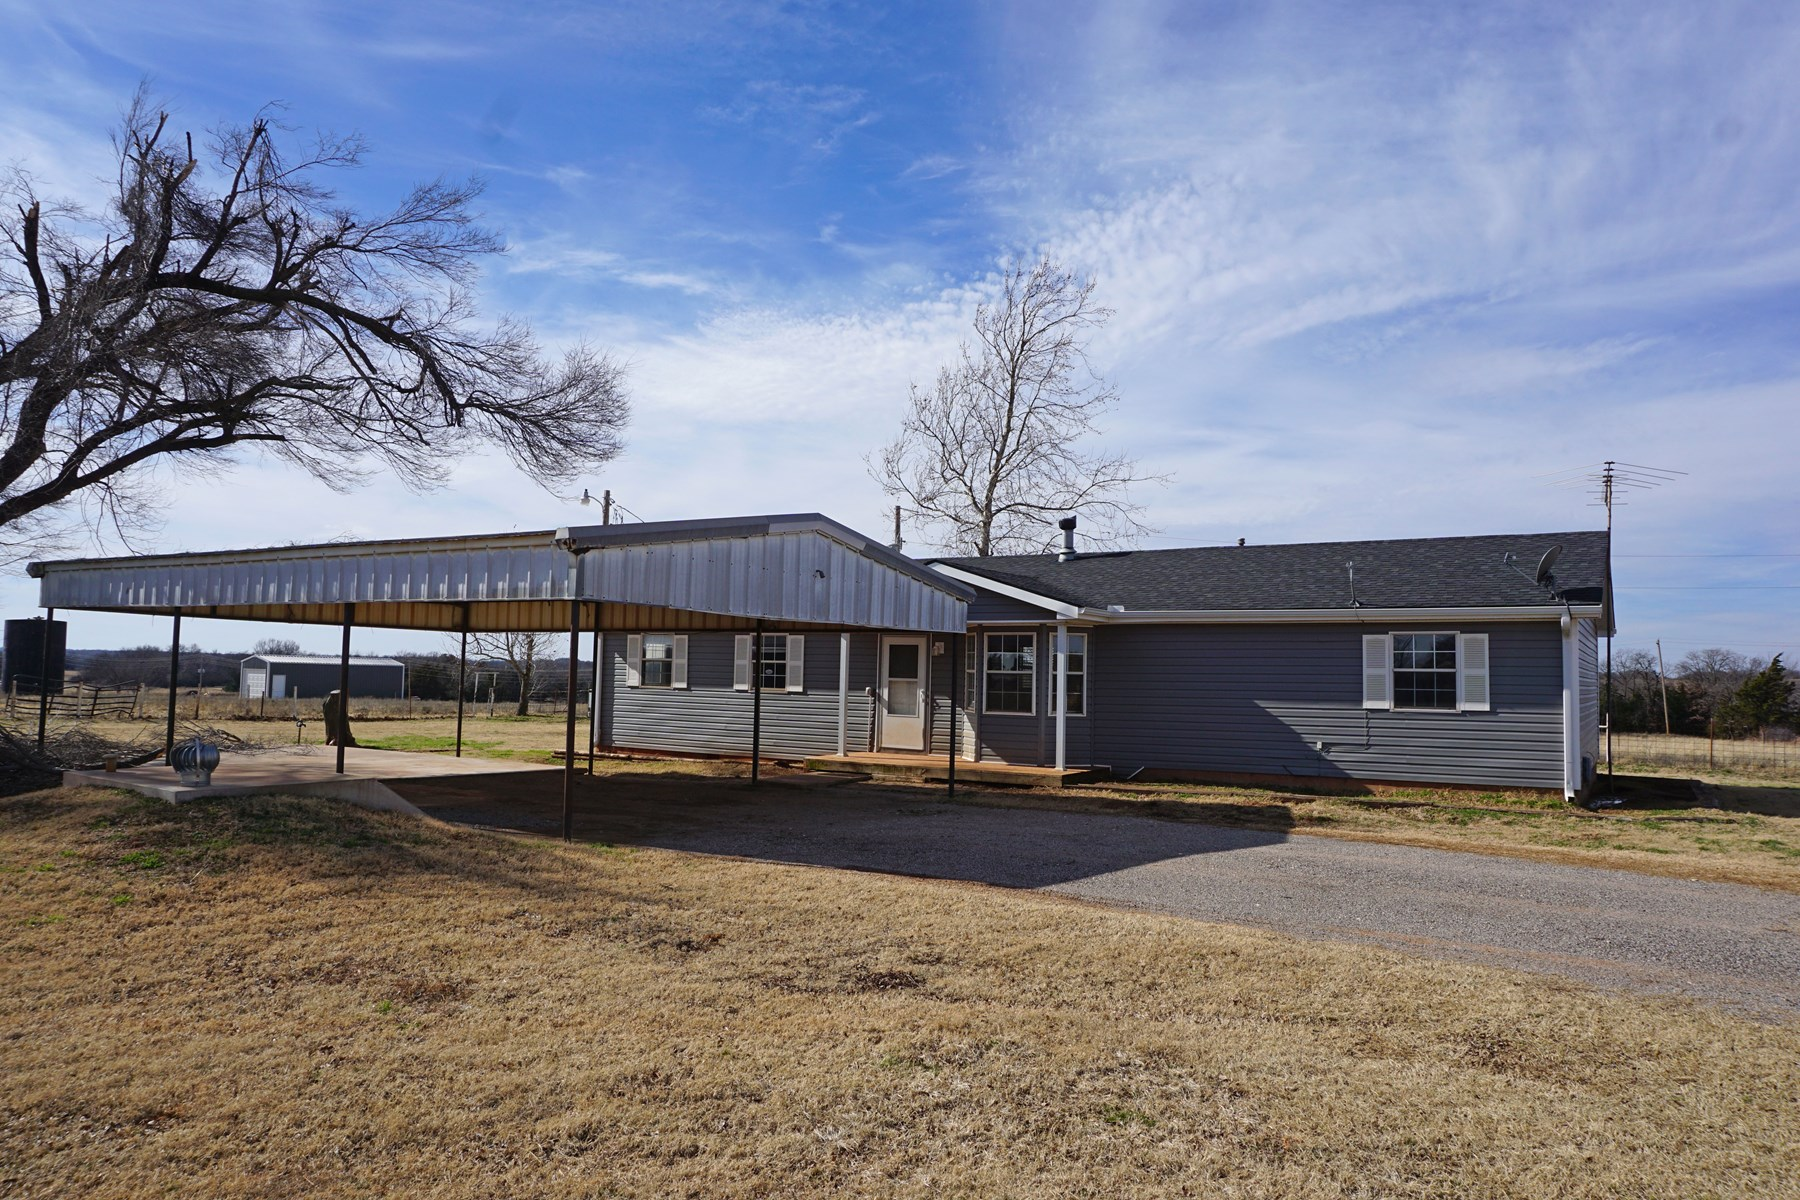 Hobby Farm on 4.4 acres +/-, Chandler, OK. Central OK